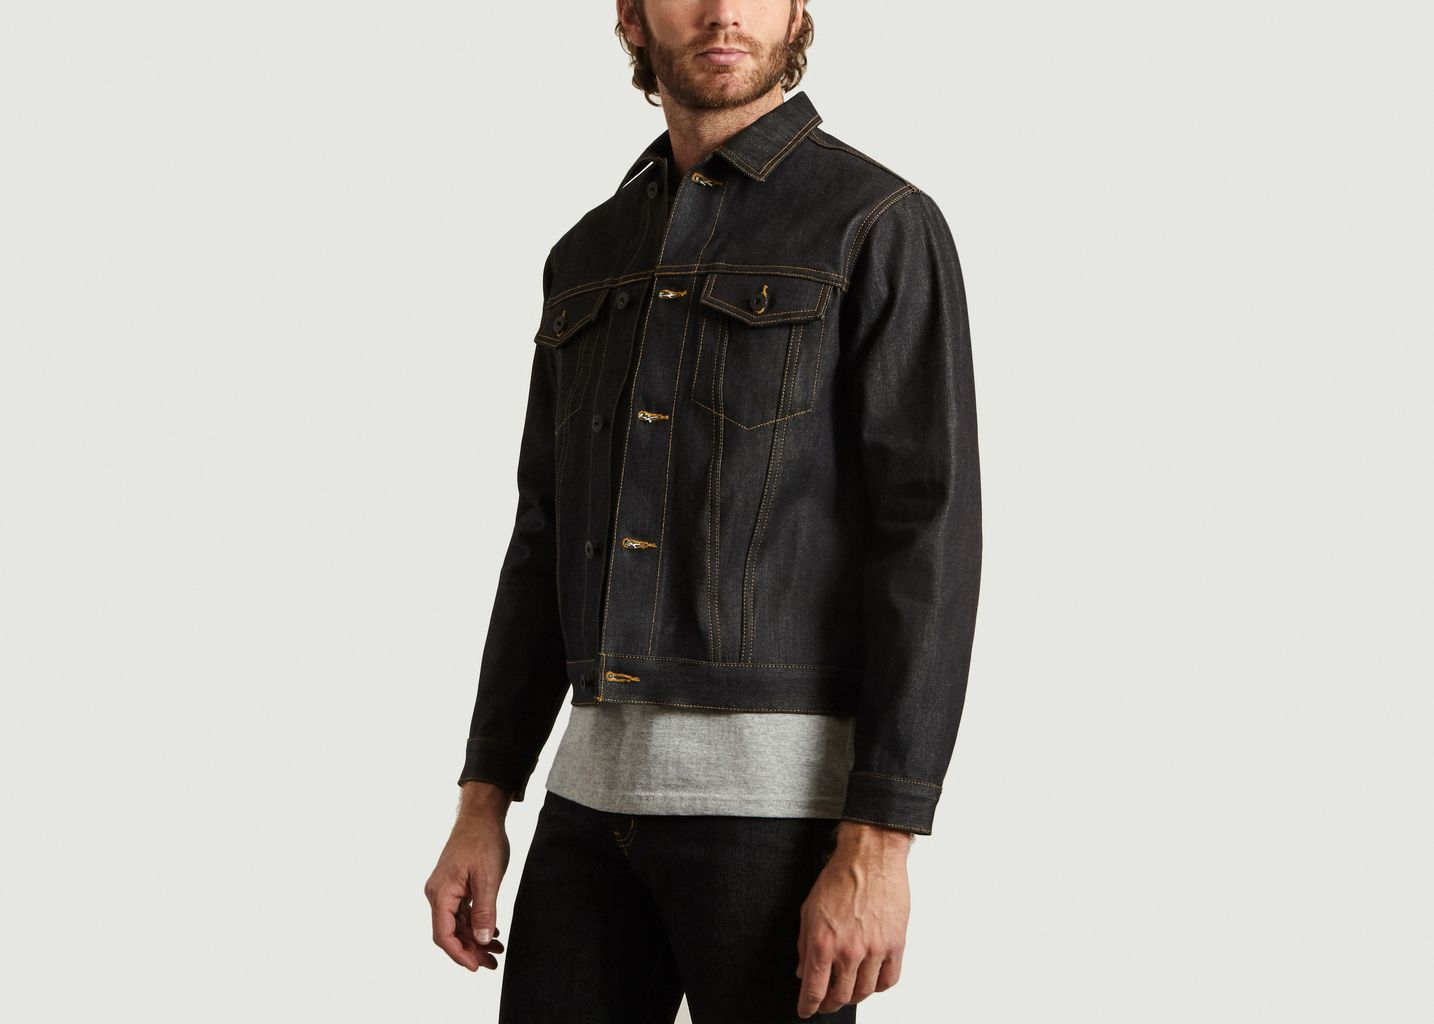 Veste en Jean Brut Guardian Selvedge - Naked and Famous